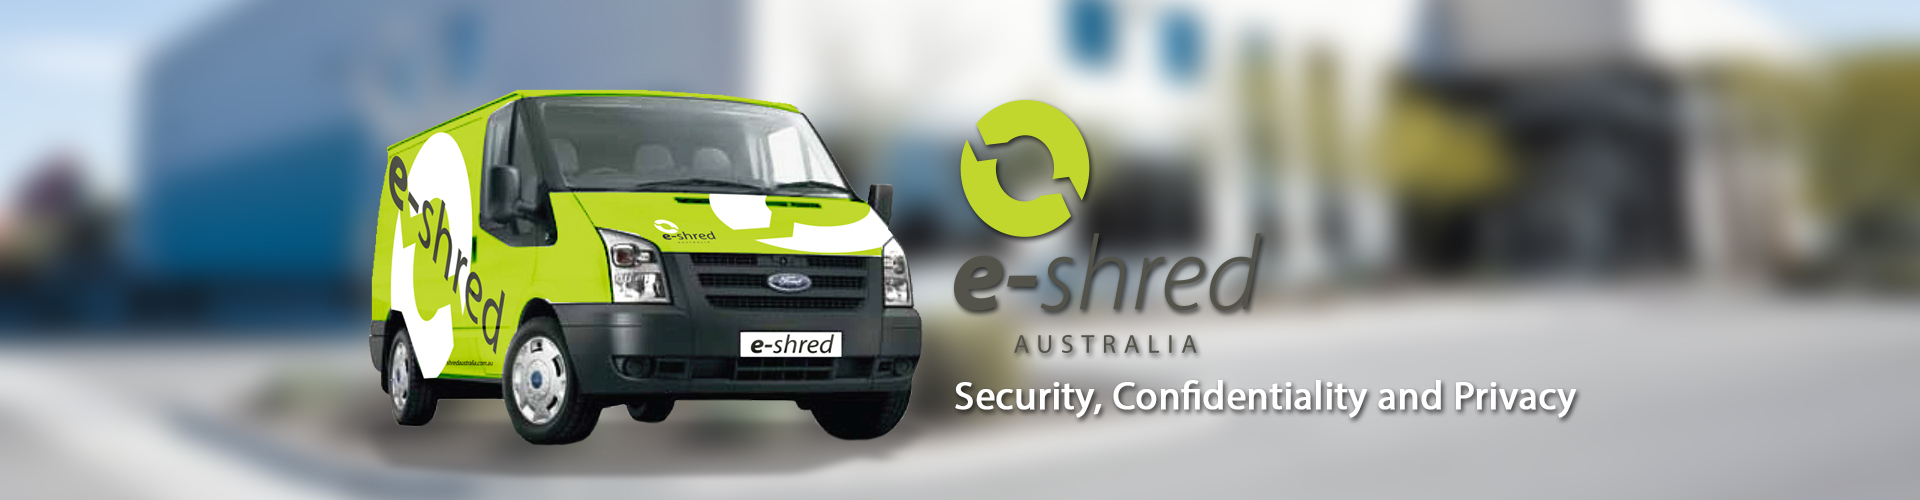 e-shred Slider Image